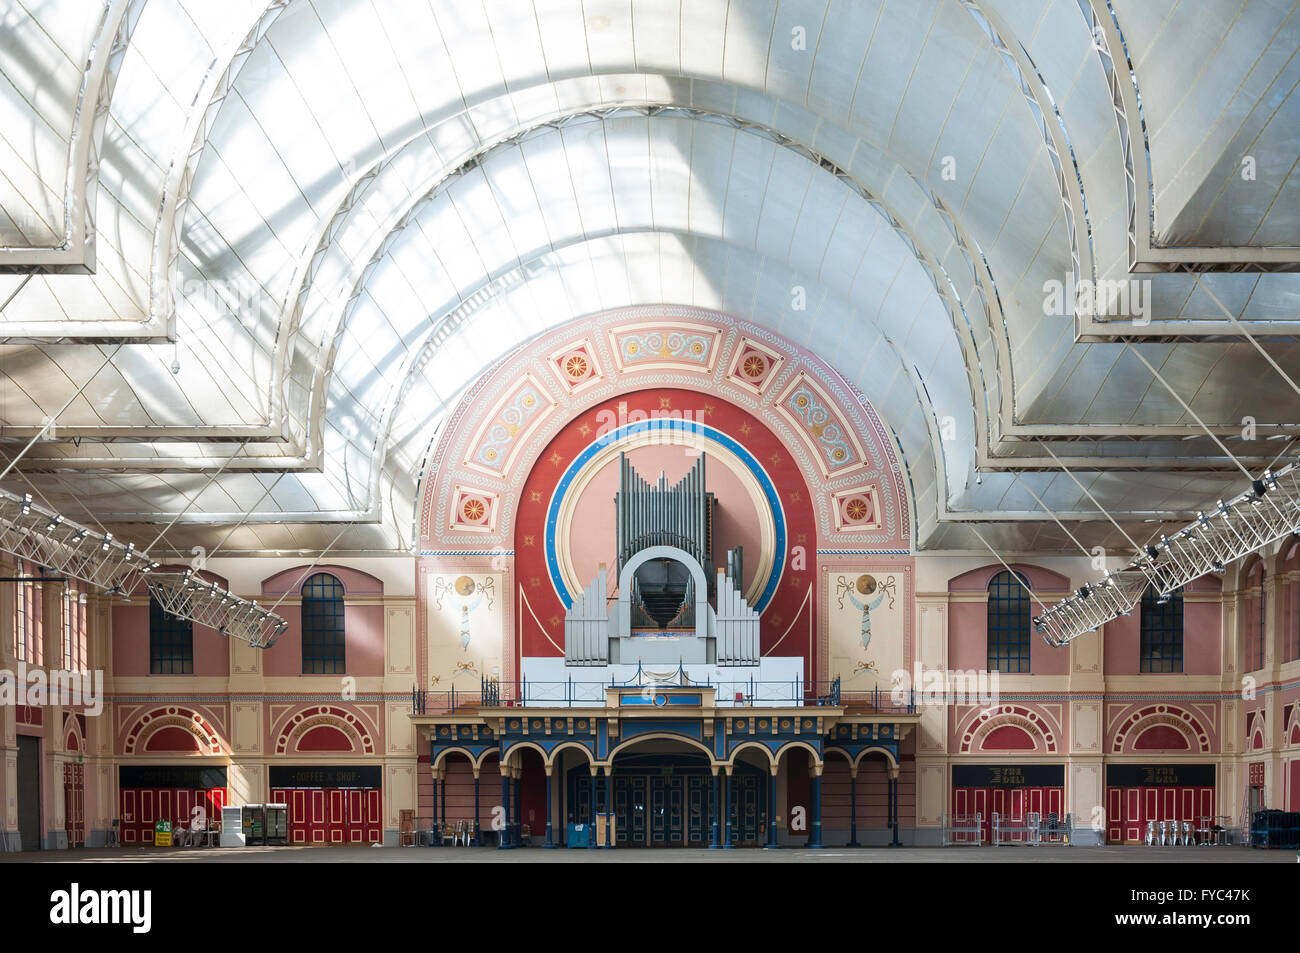 Great Hall at Alexandra Palace, London Borough of Haringey, Greater London, England, United Kingdom - Stock Image